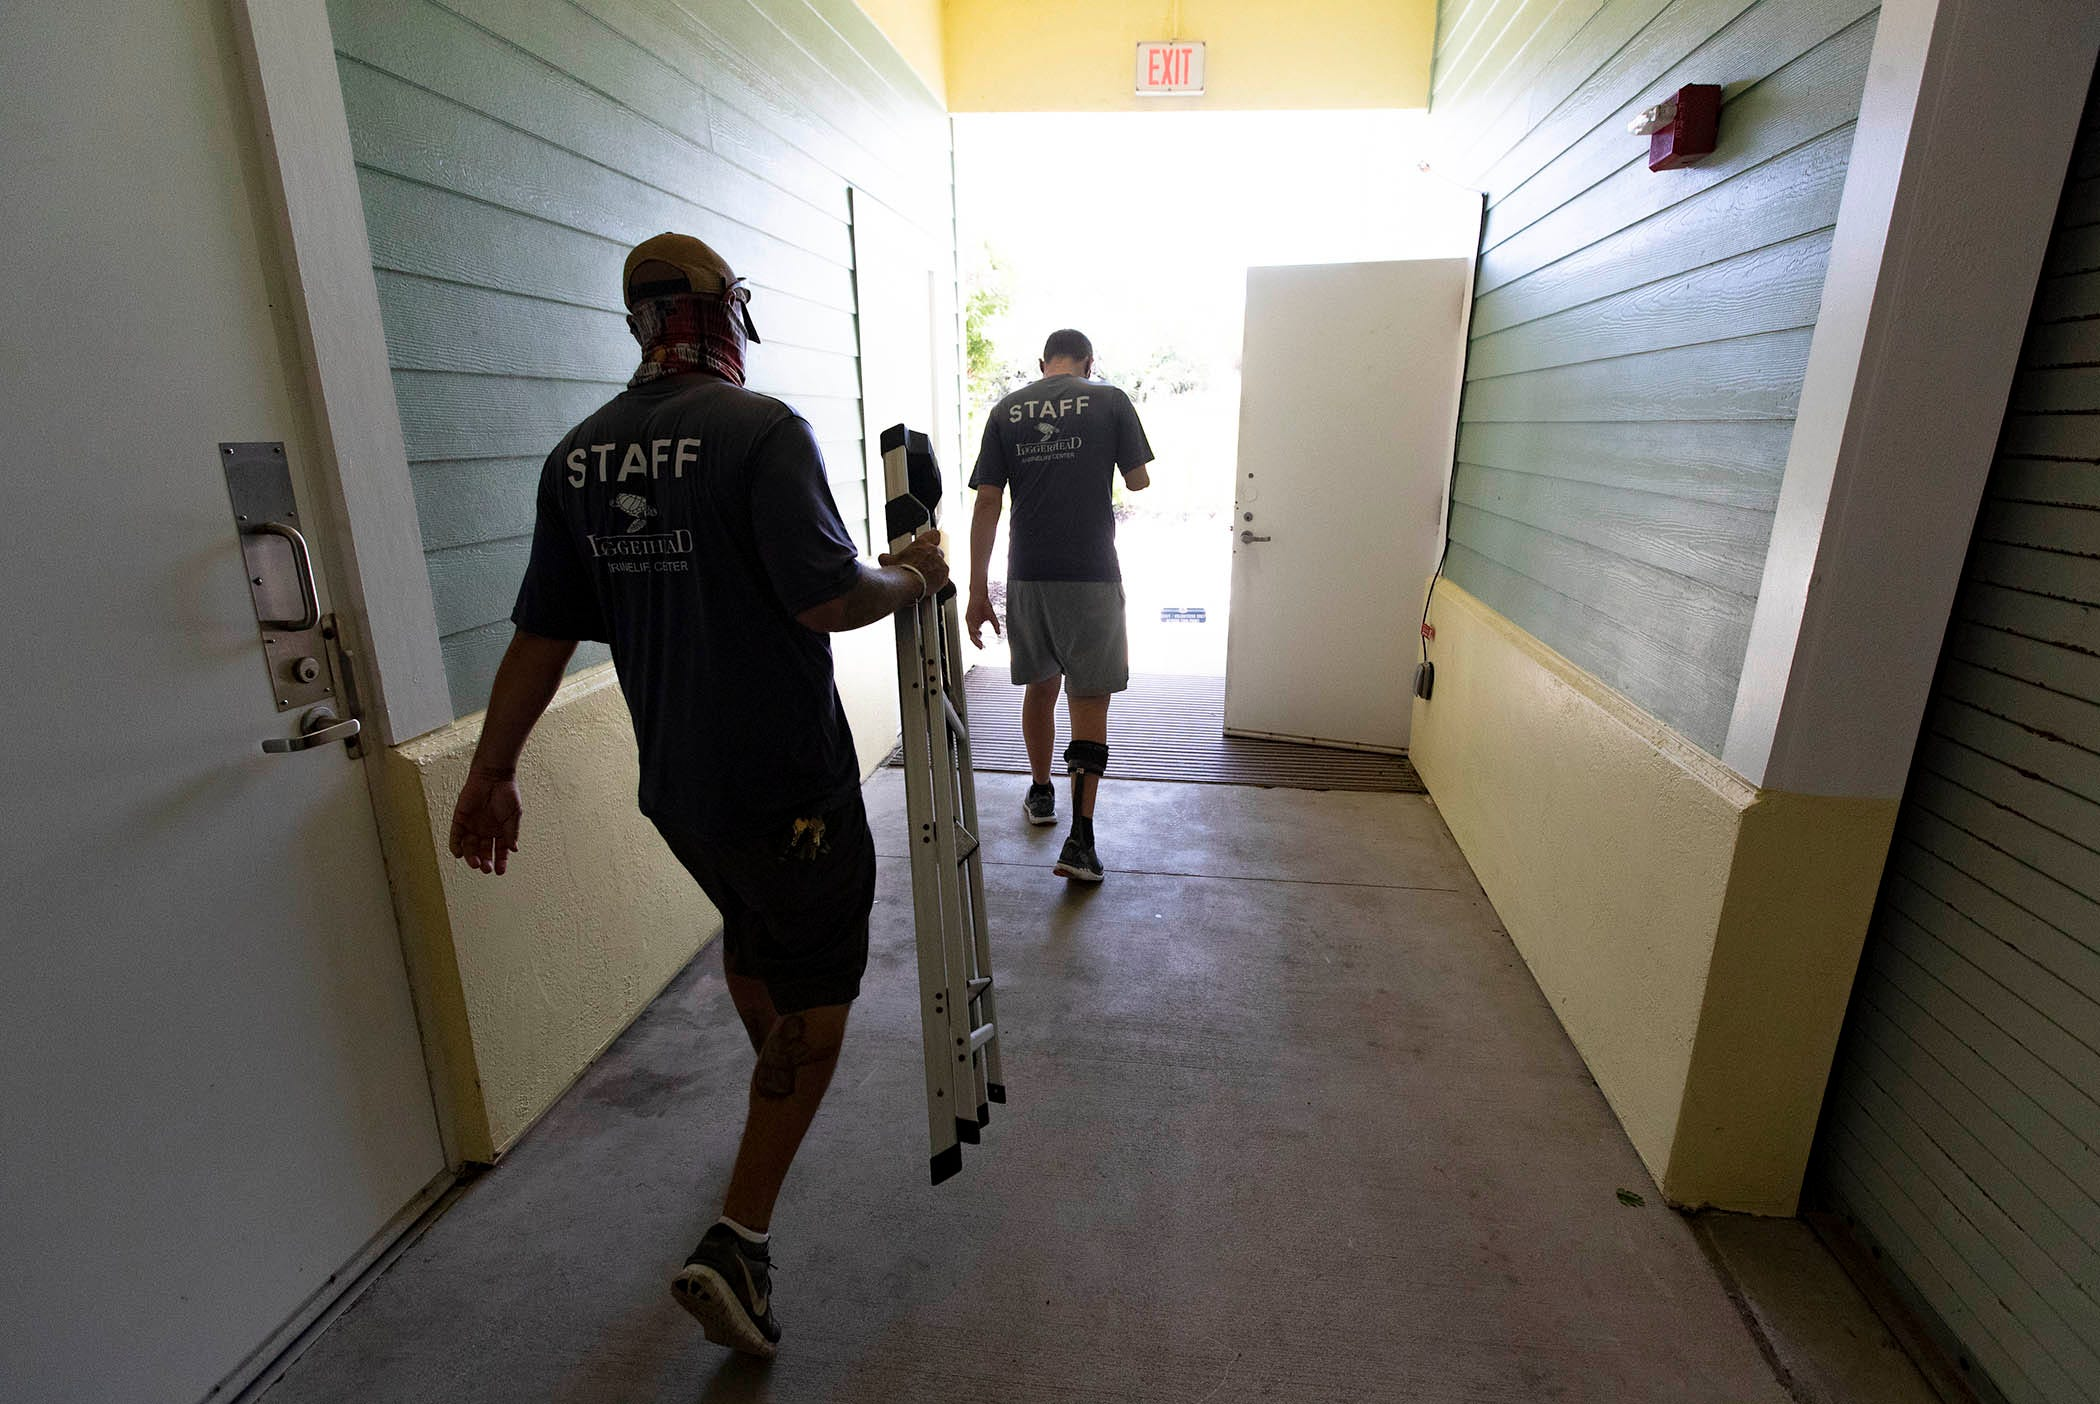 Andy Earl carries a ladder for Carter Viss Aug. 5 at Loggerhead Marinelife Center in Juno Beach, where they work. Viss had just finished feeding fish in the aquariums that require balancing on a ladder to drop food into the top of the tanks.